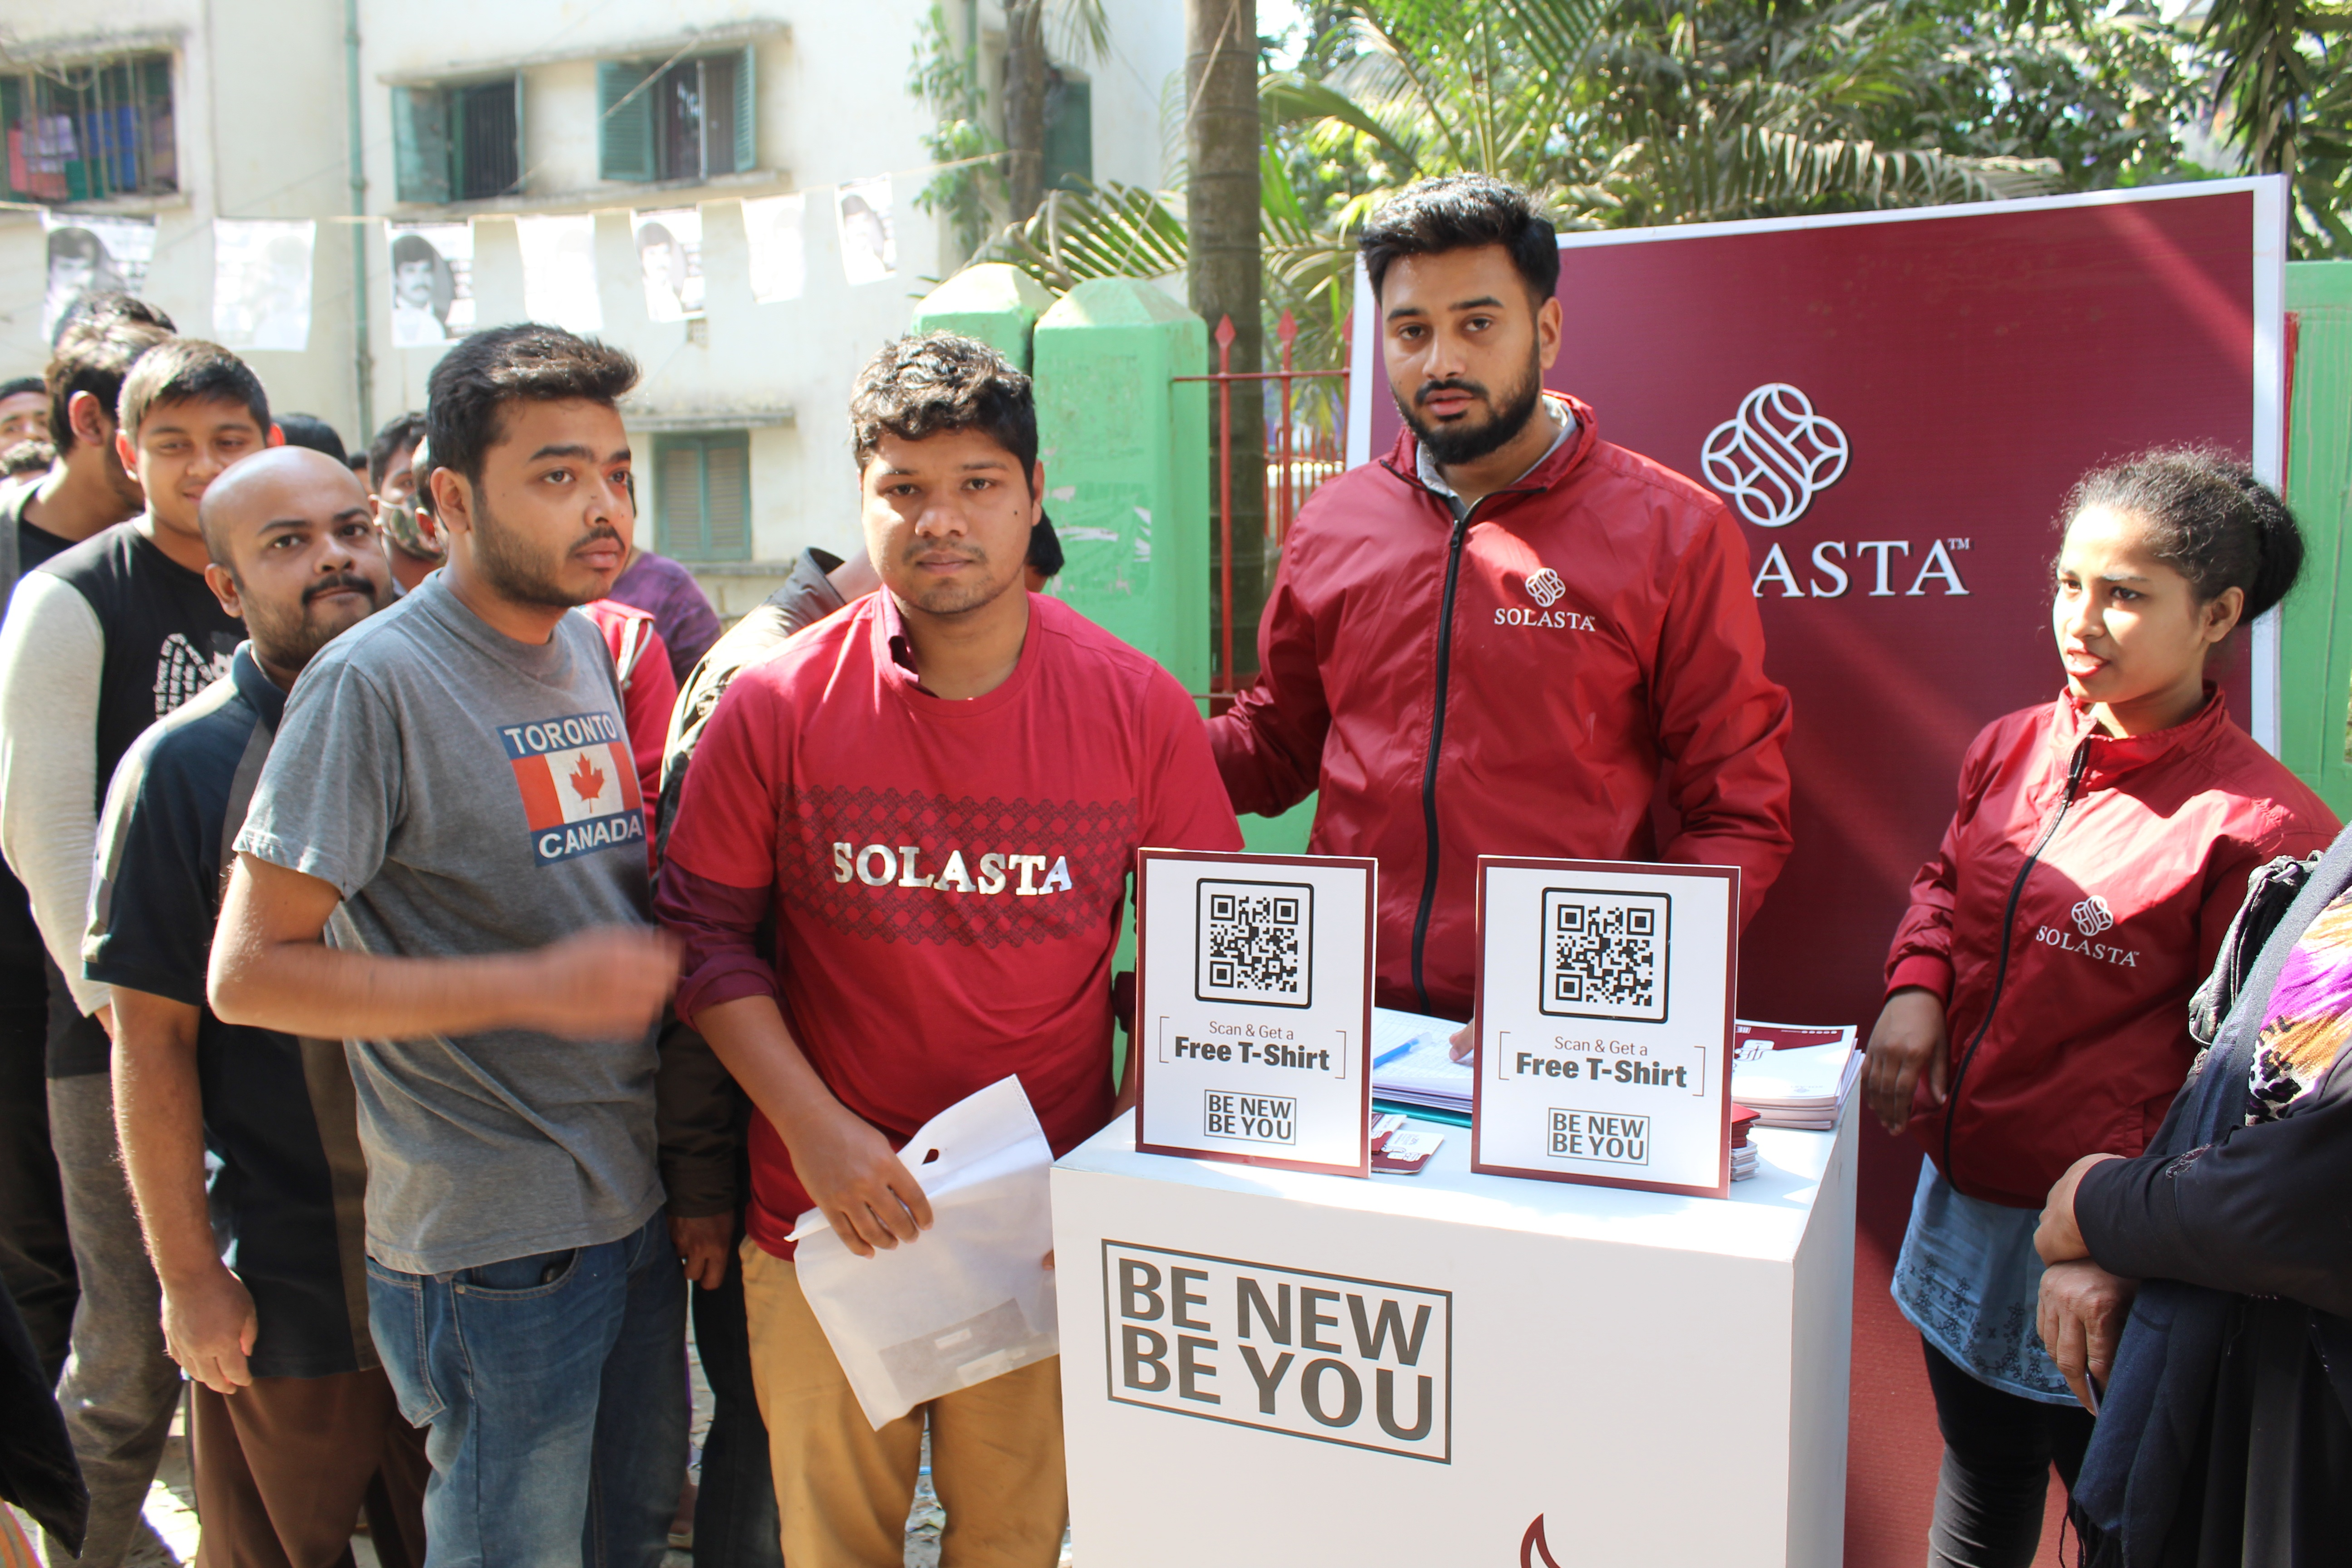 Solasta activation for youth kicks off in capital